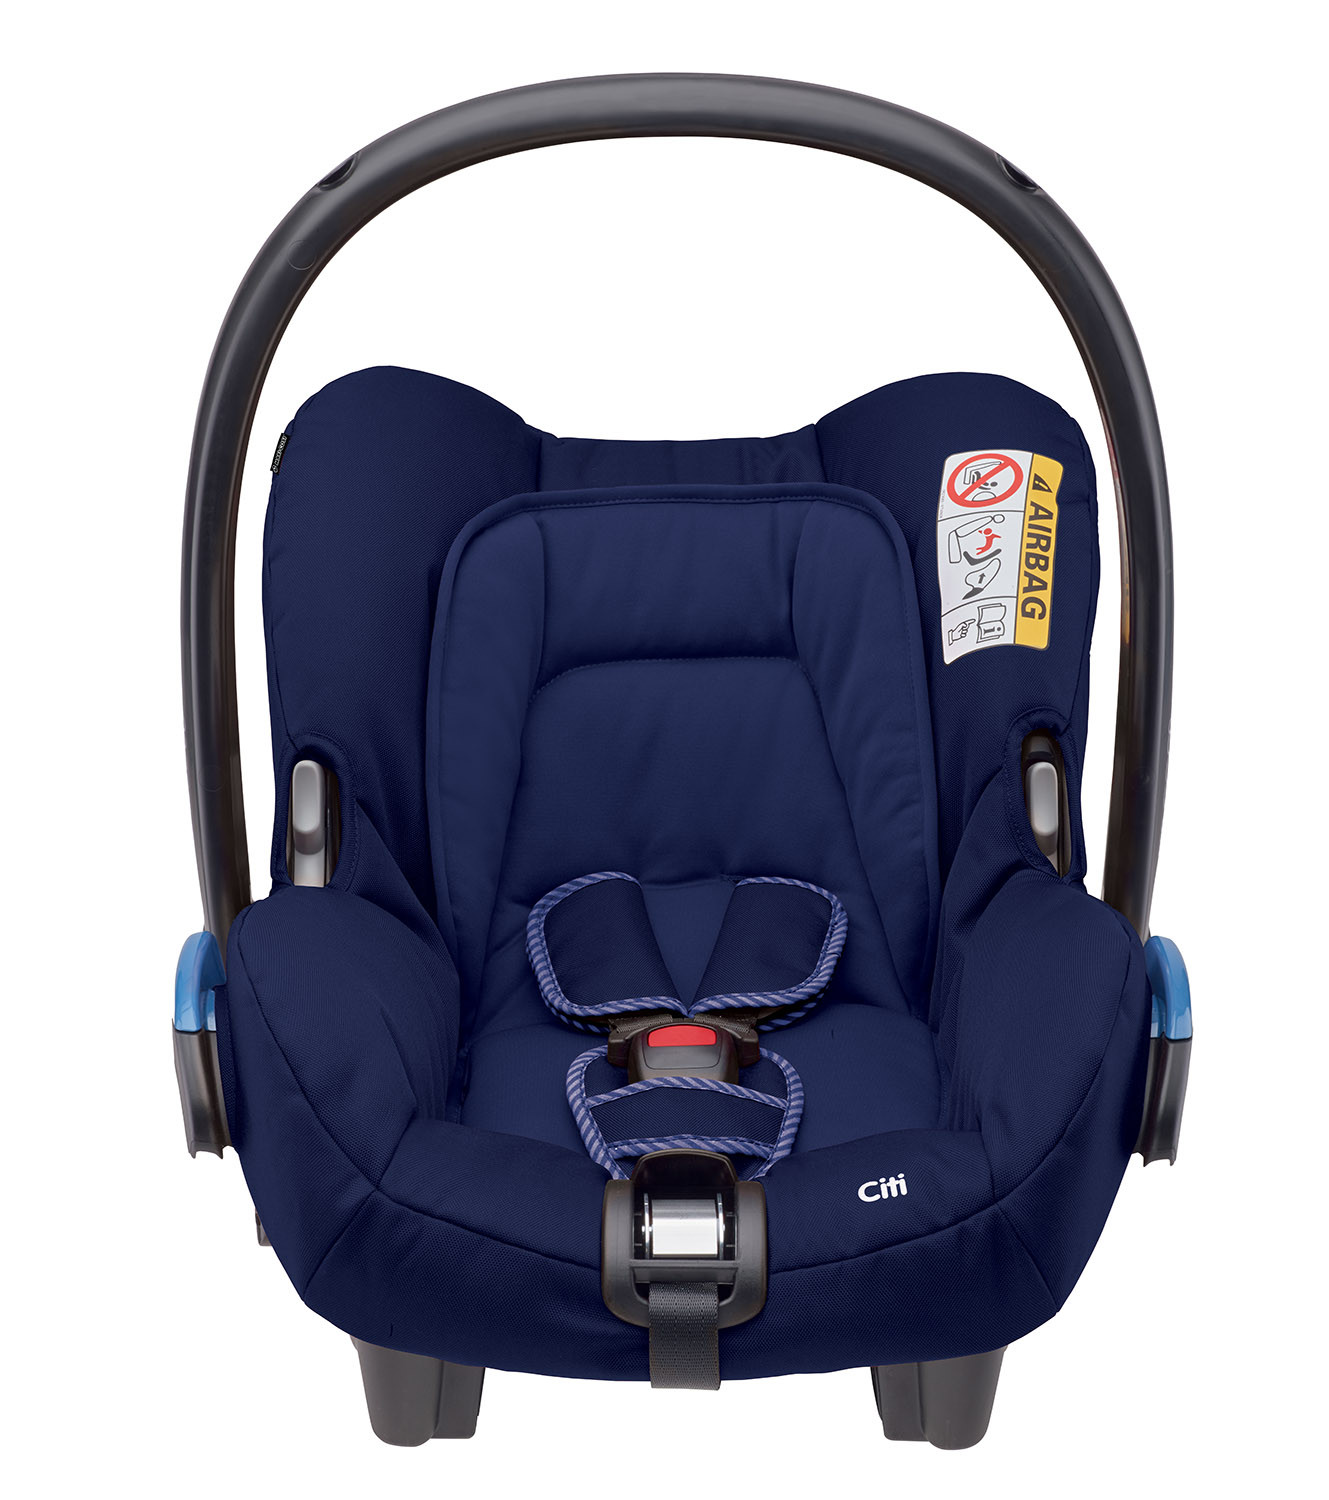 maxi cosi baby autostoel citi river blue online kopen babyplanet. Black Bedroom Furniture Sets. Home Design Ideas